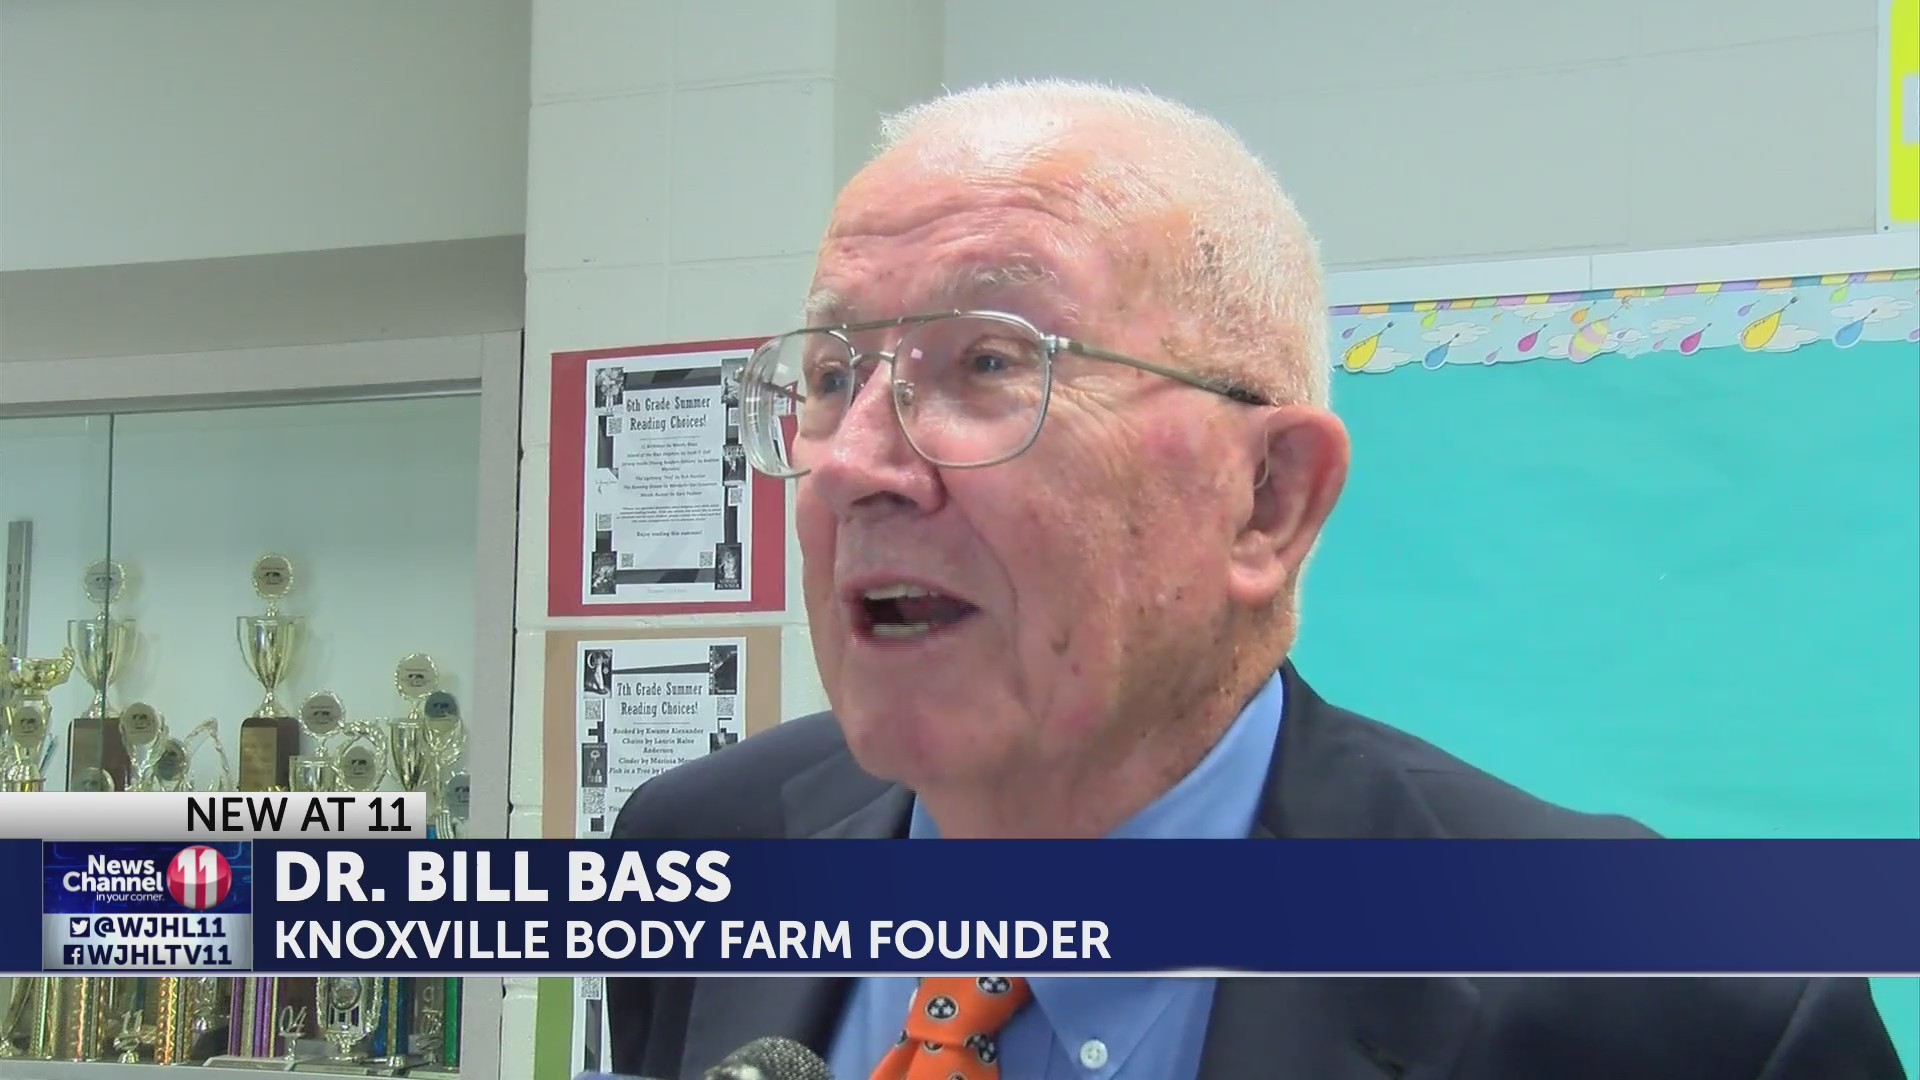 UT Body Farm founder Bill Bass speaks at event in Kingsport